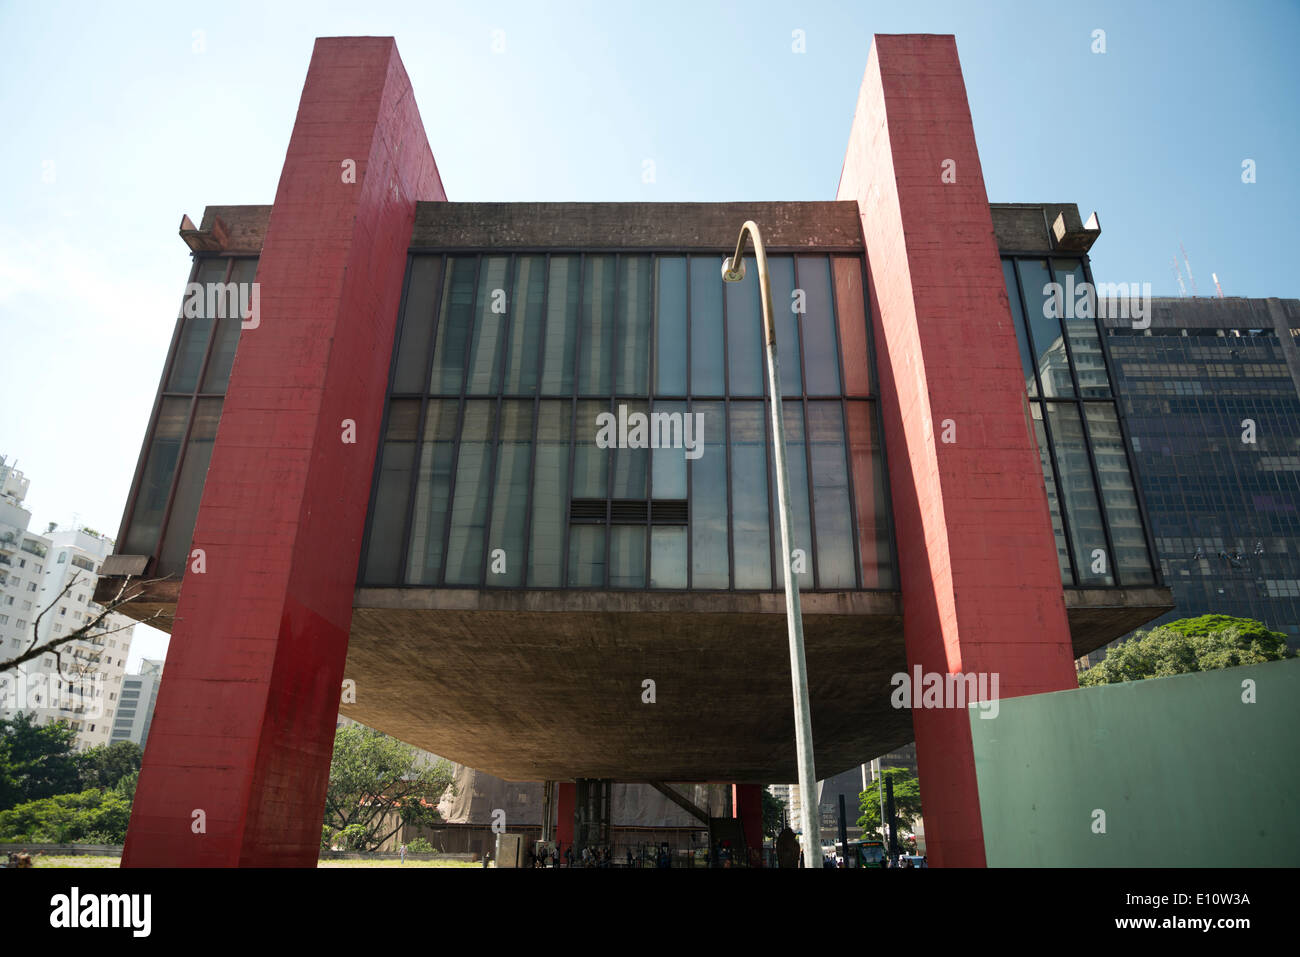 Le musée d'Art de Sao Paulo, MASP. Photo Stock